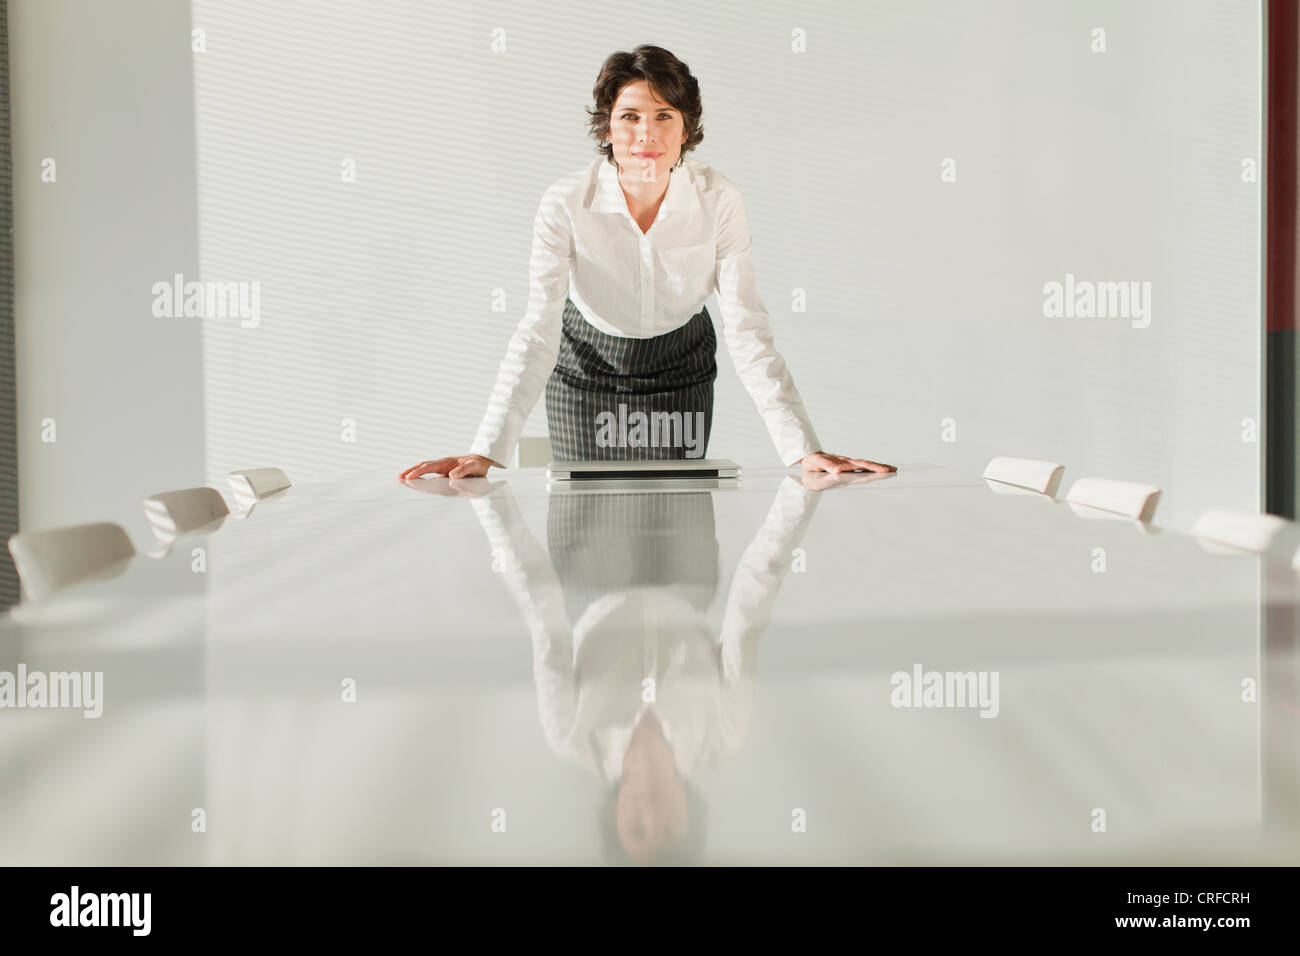 Businesswoman reflected in table - Stock Image